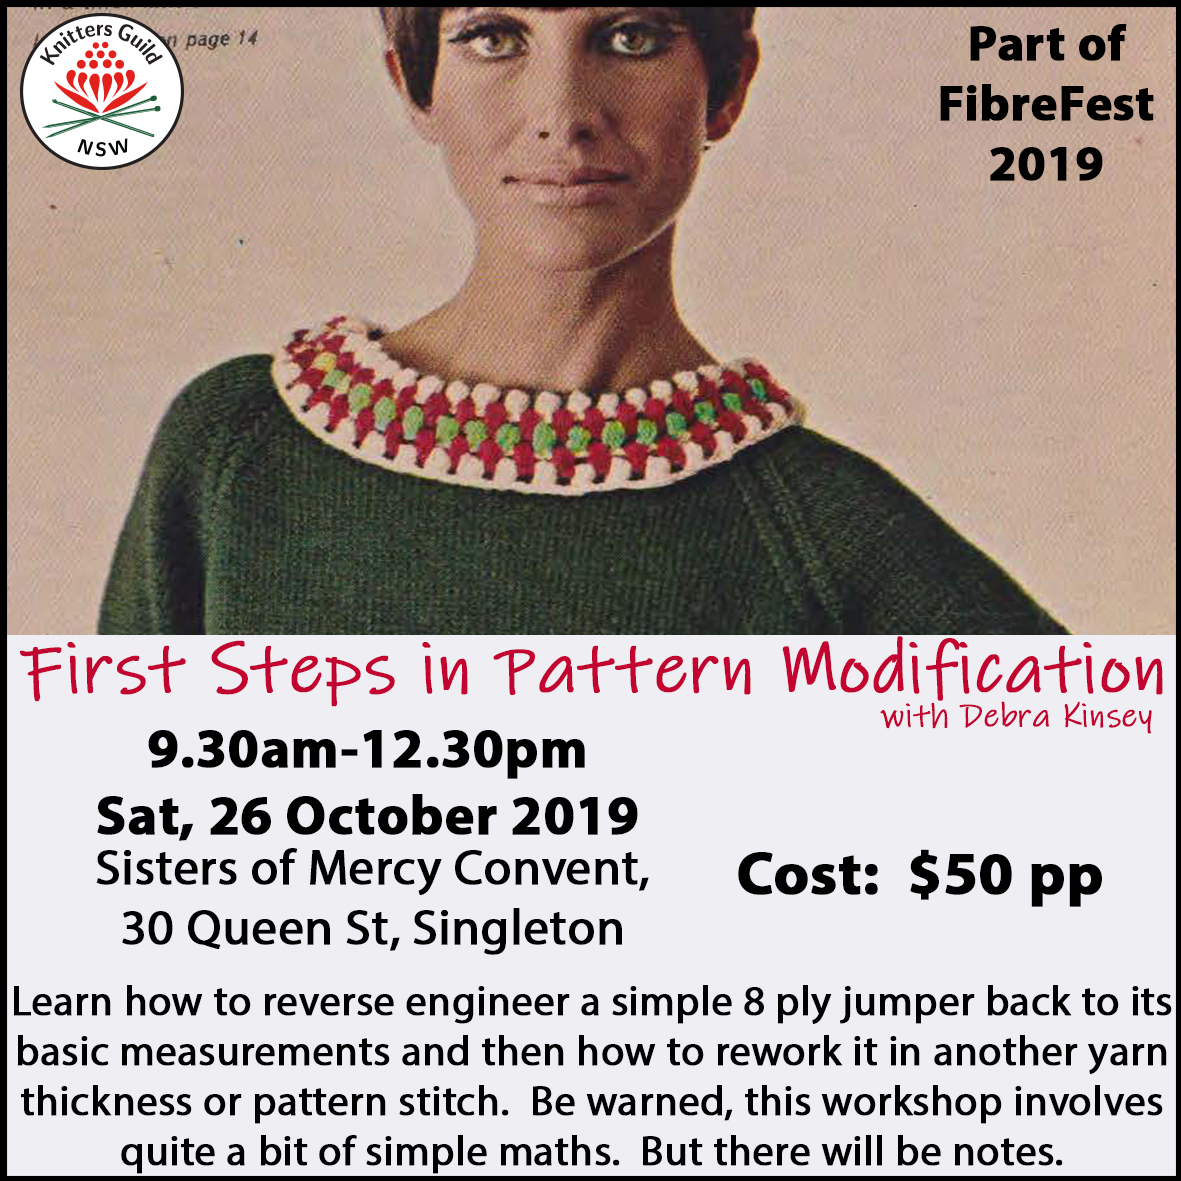 FirstStepsinPatternModification workshop